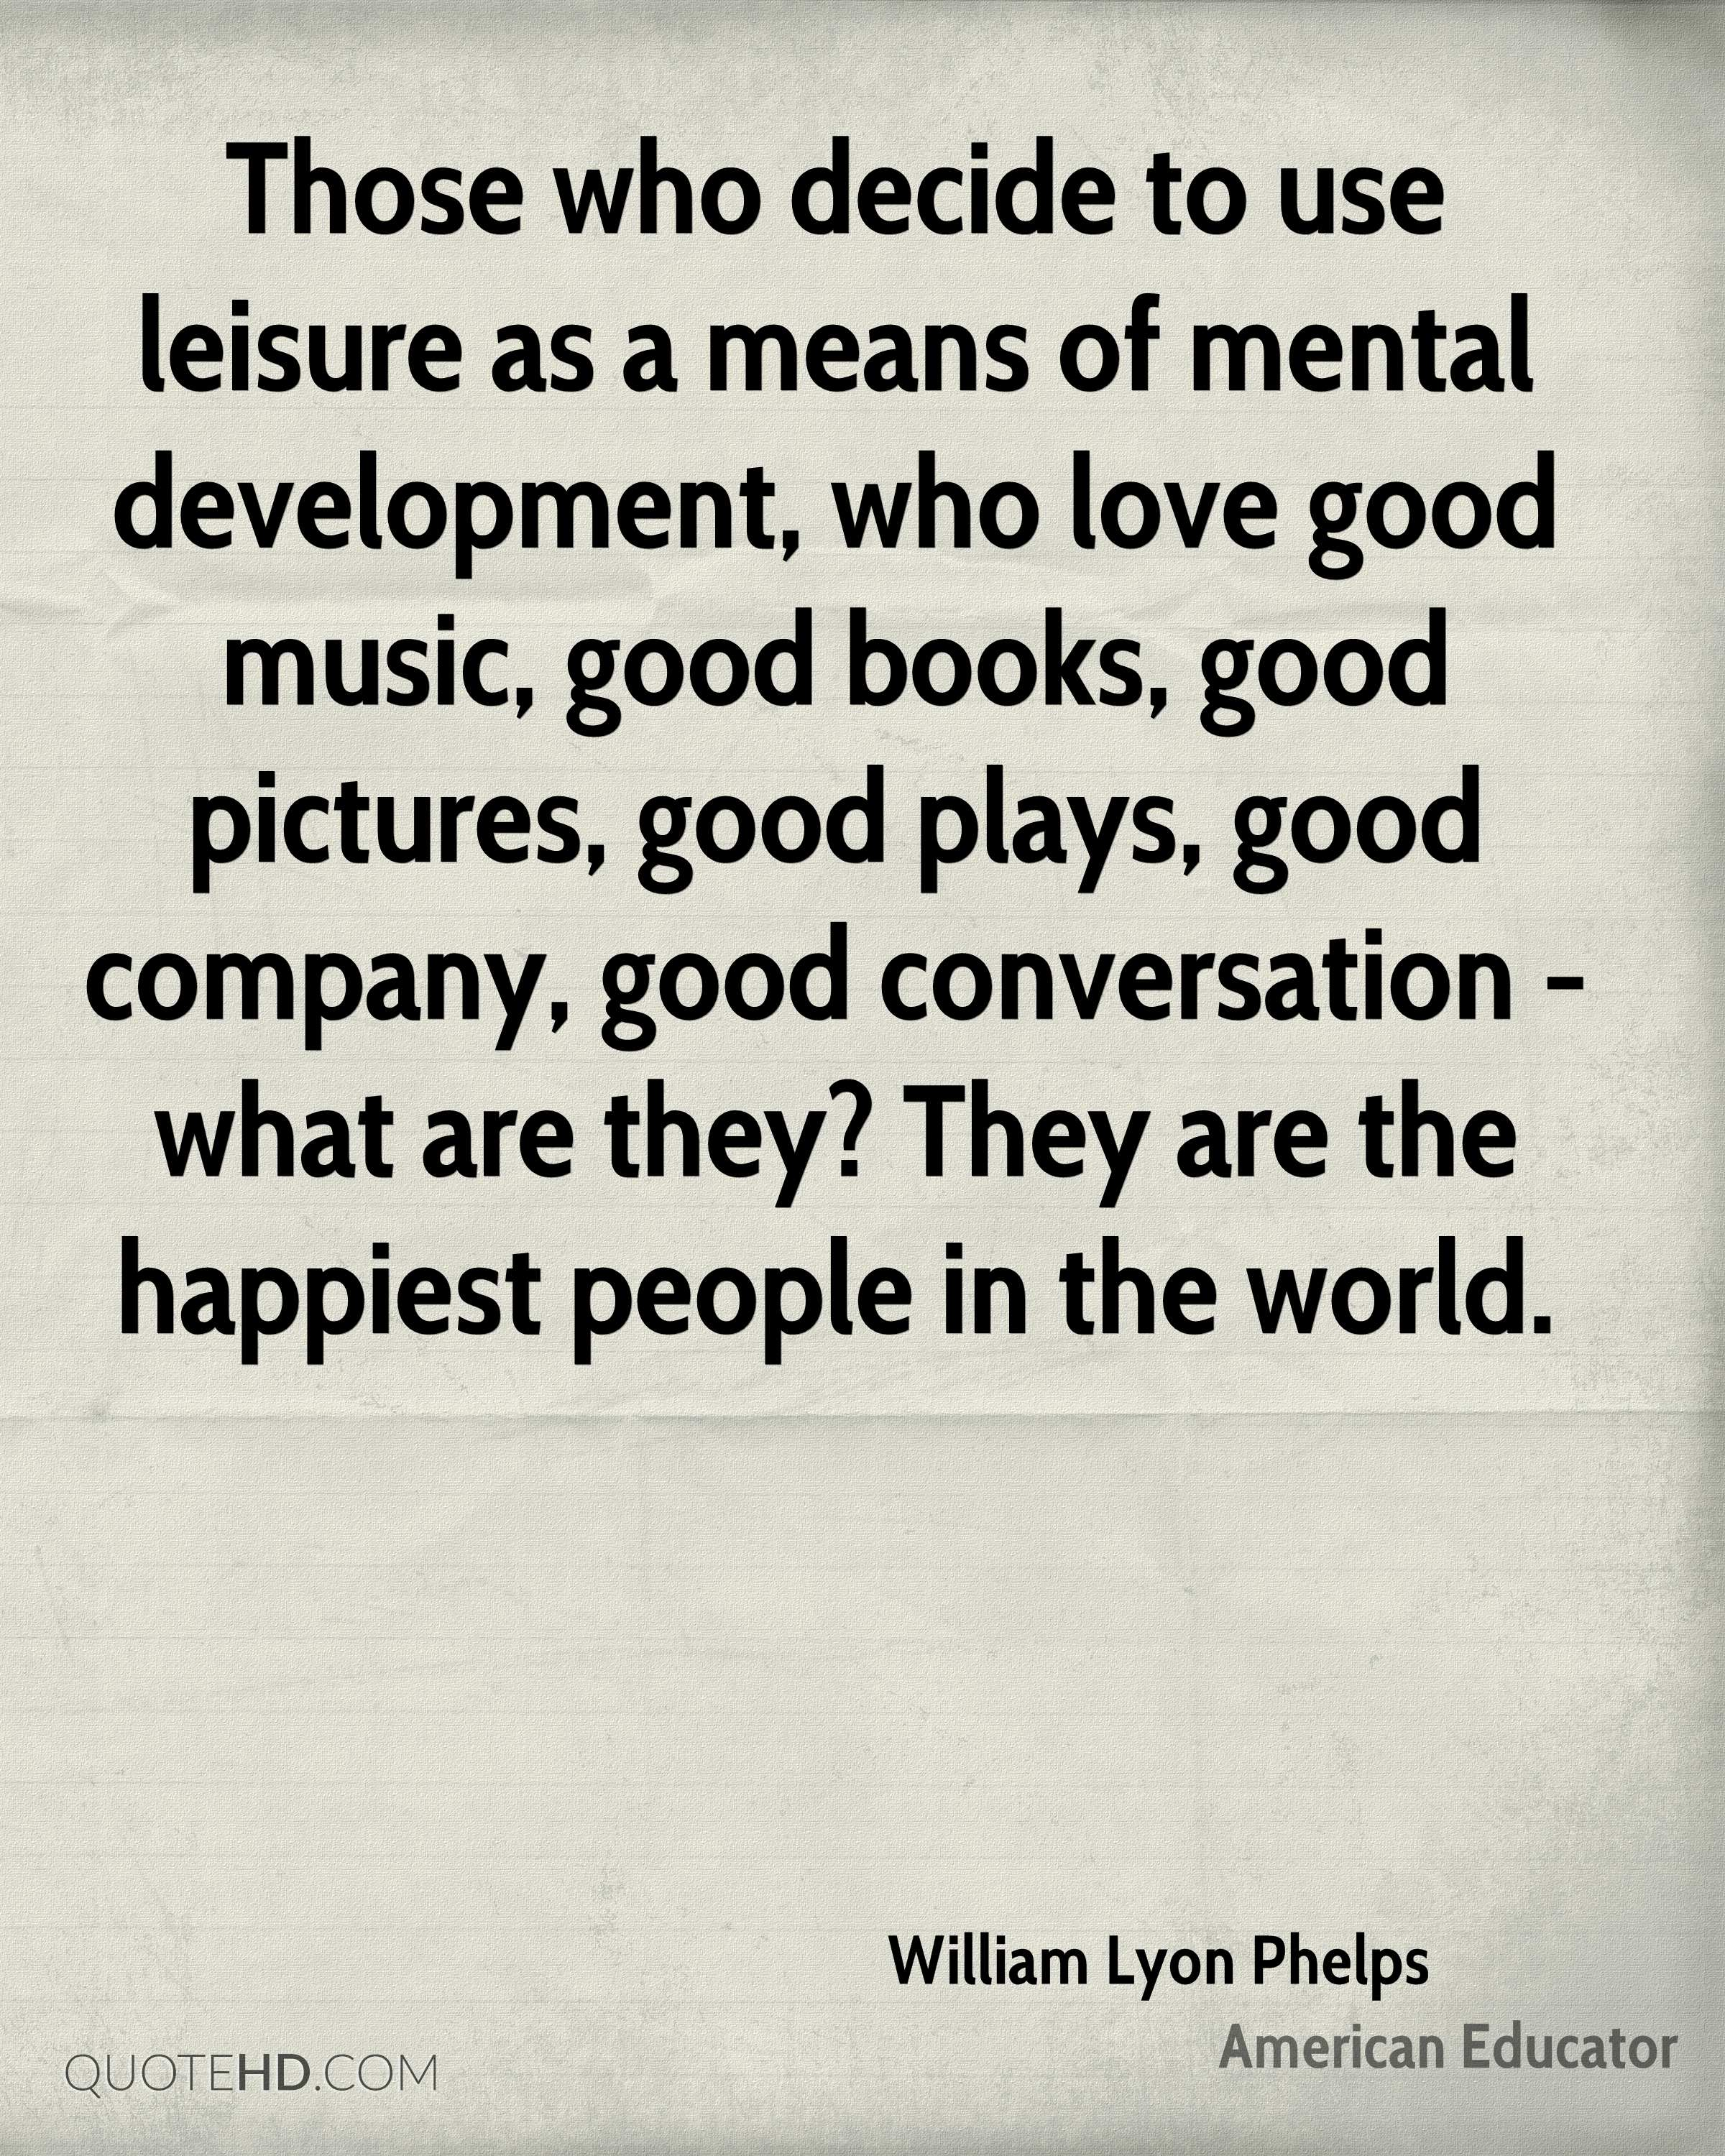 Those who decide to use leisure as a means of mental development, who love good music, good books, good pictures, good plays, good company, good conversation - what are they? They are the happiest people in the world.